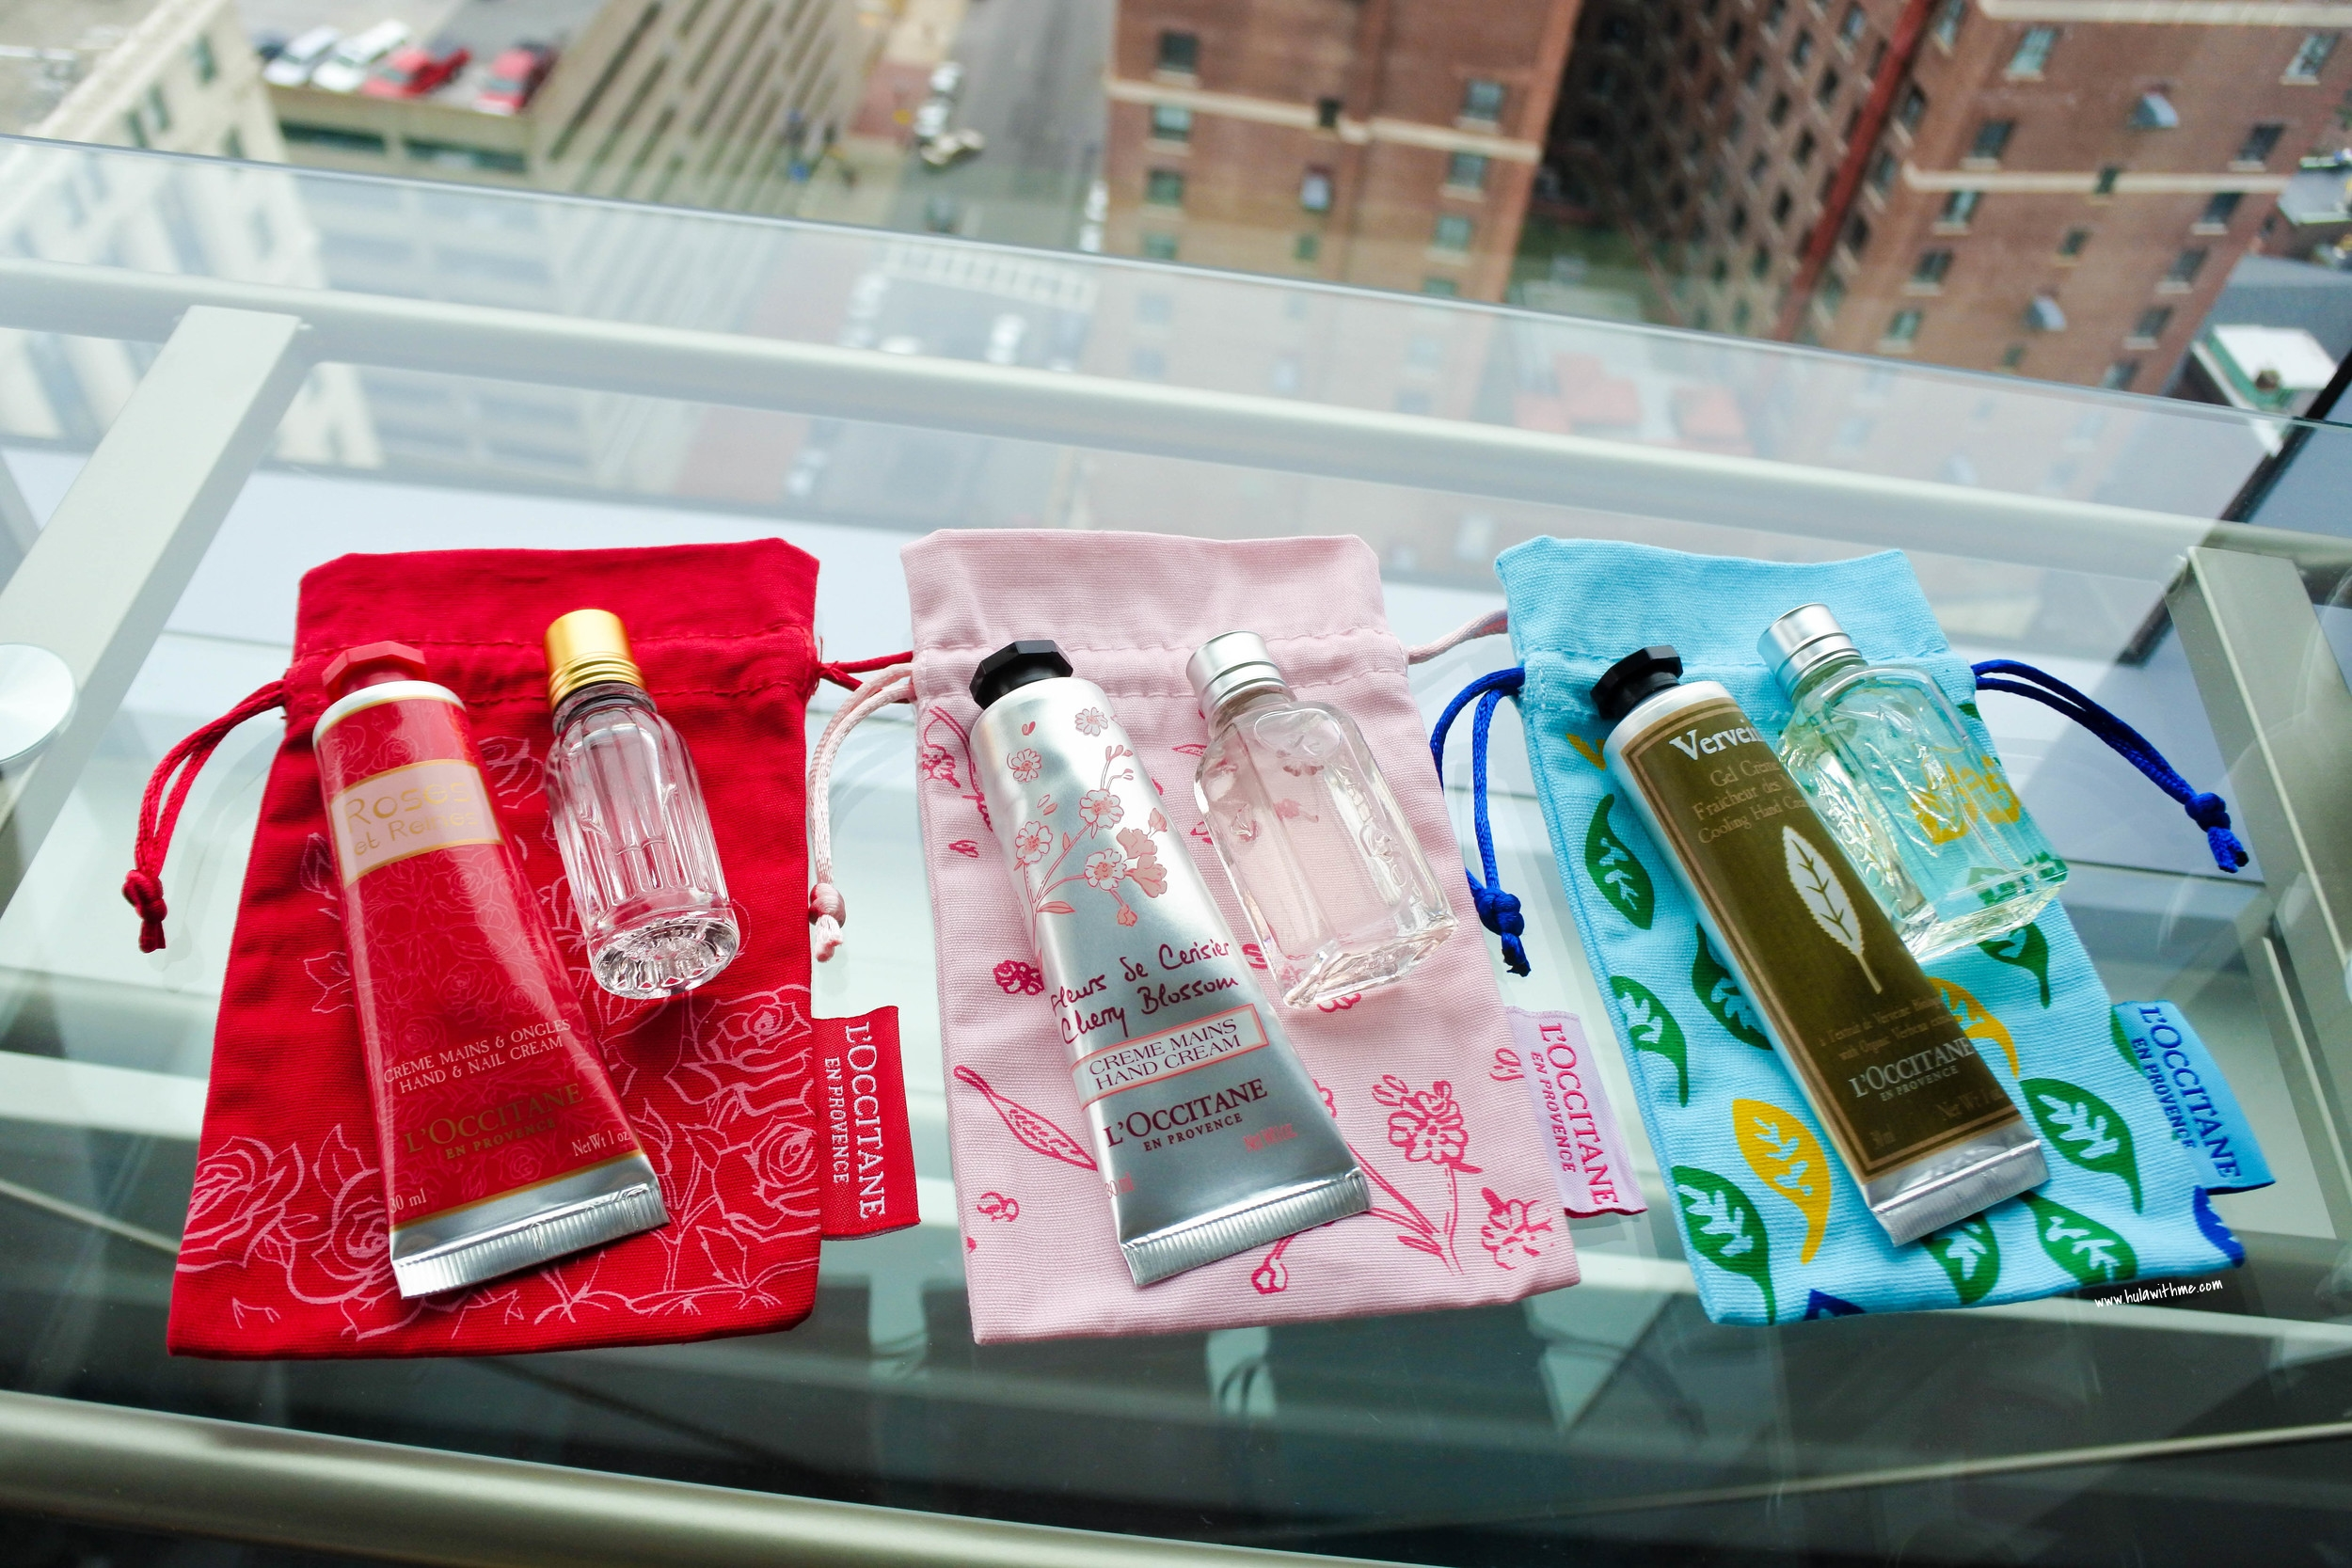 L'Occitane hand creams & fragrances gift collection - Inflight duty free exclusives